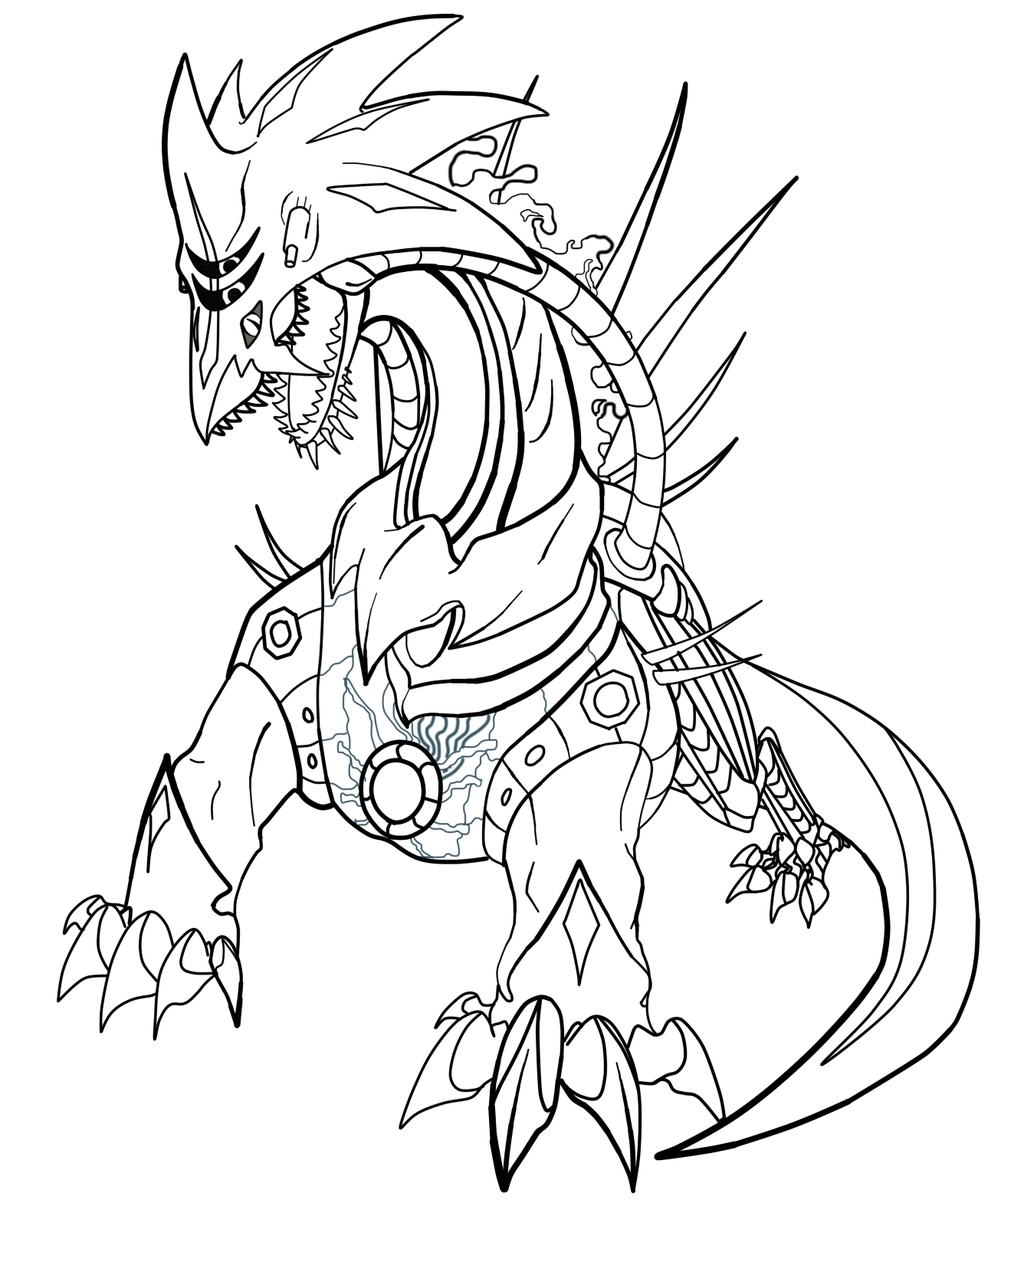 Super sonic Coloring Pages - Super sonic and Super Shadow and Super Silver Coloring